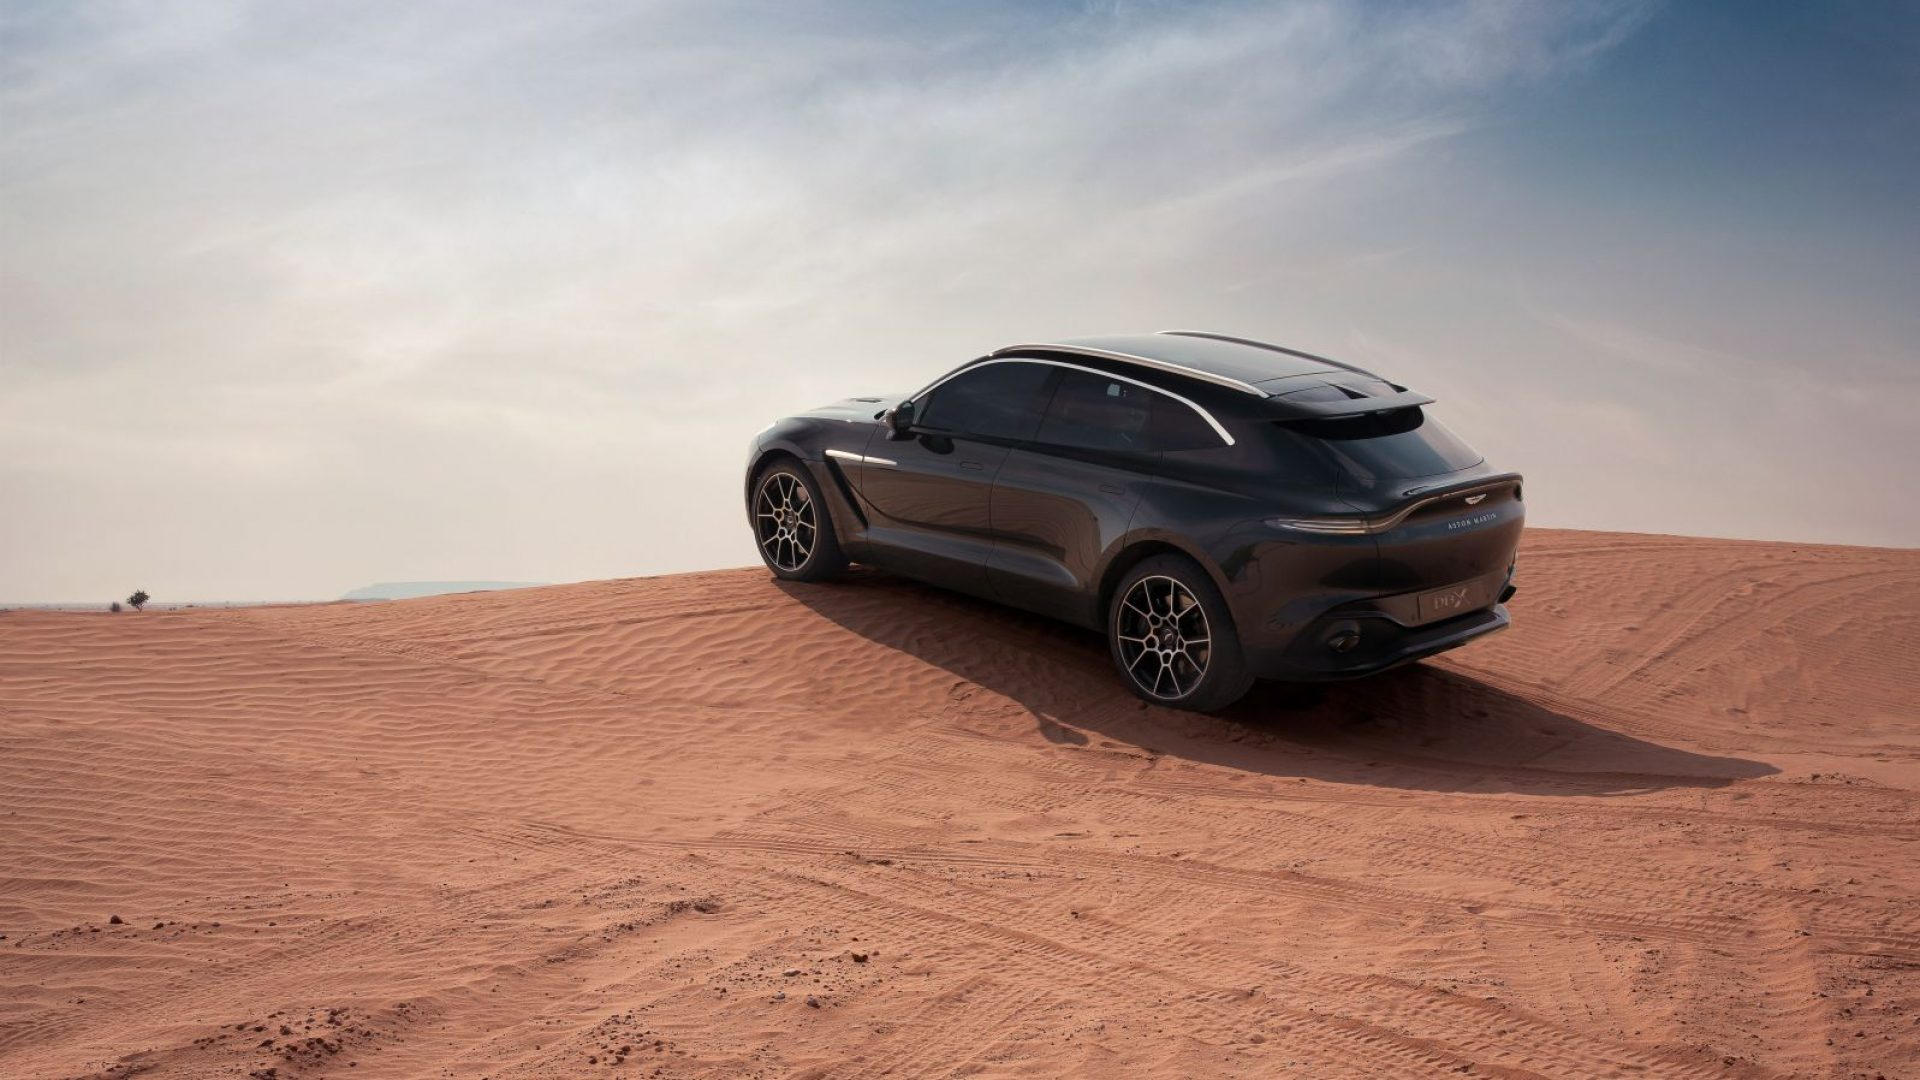 aston-martin-dbx-in-the-middle-east-27-jpg.